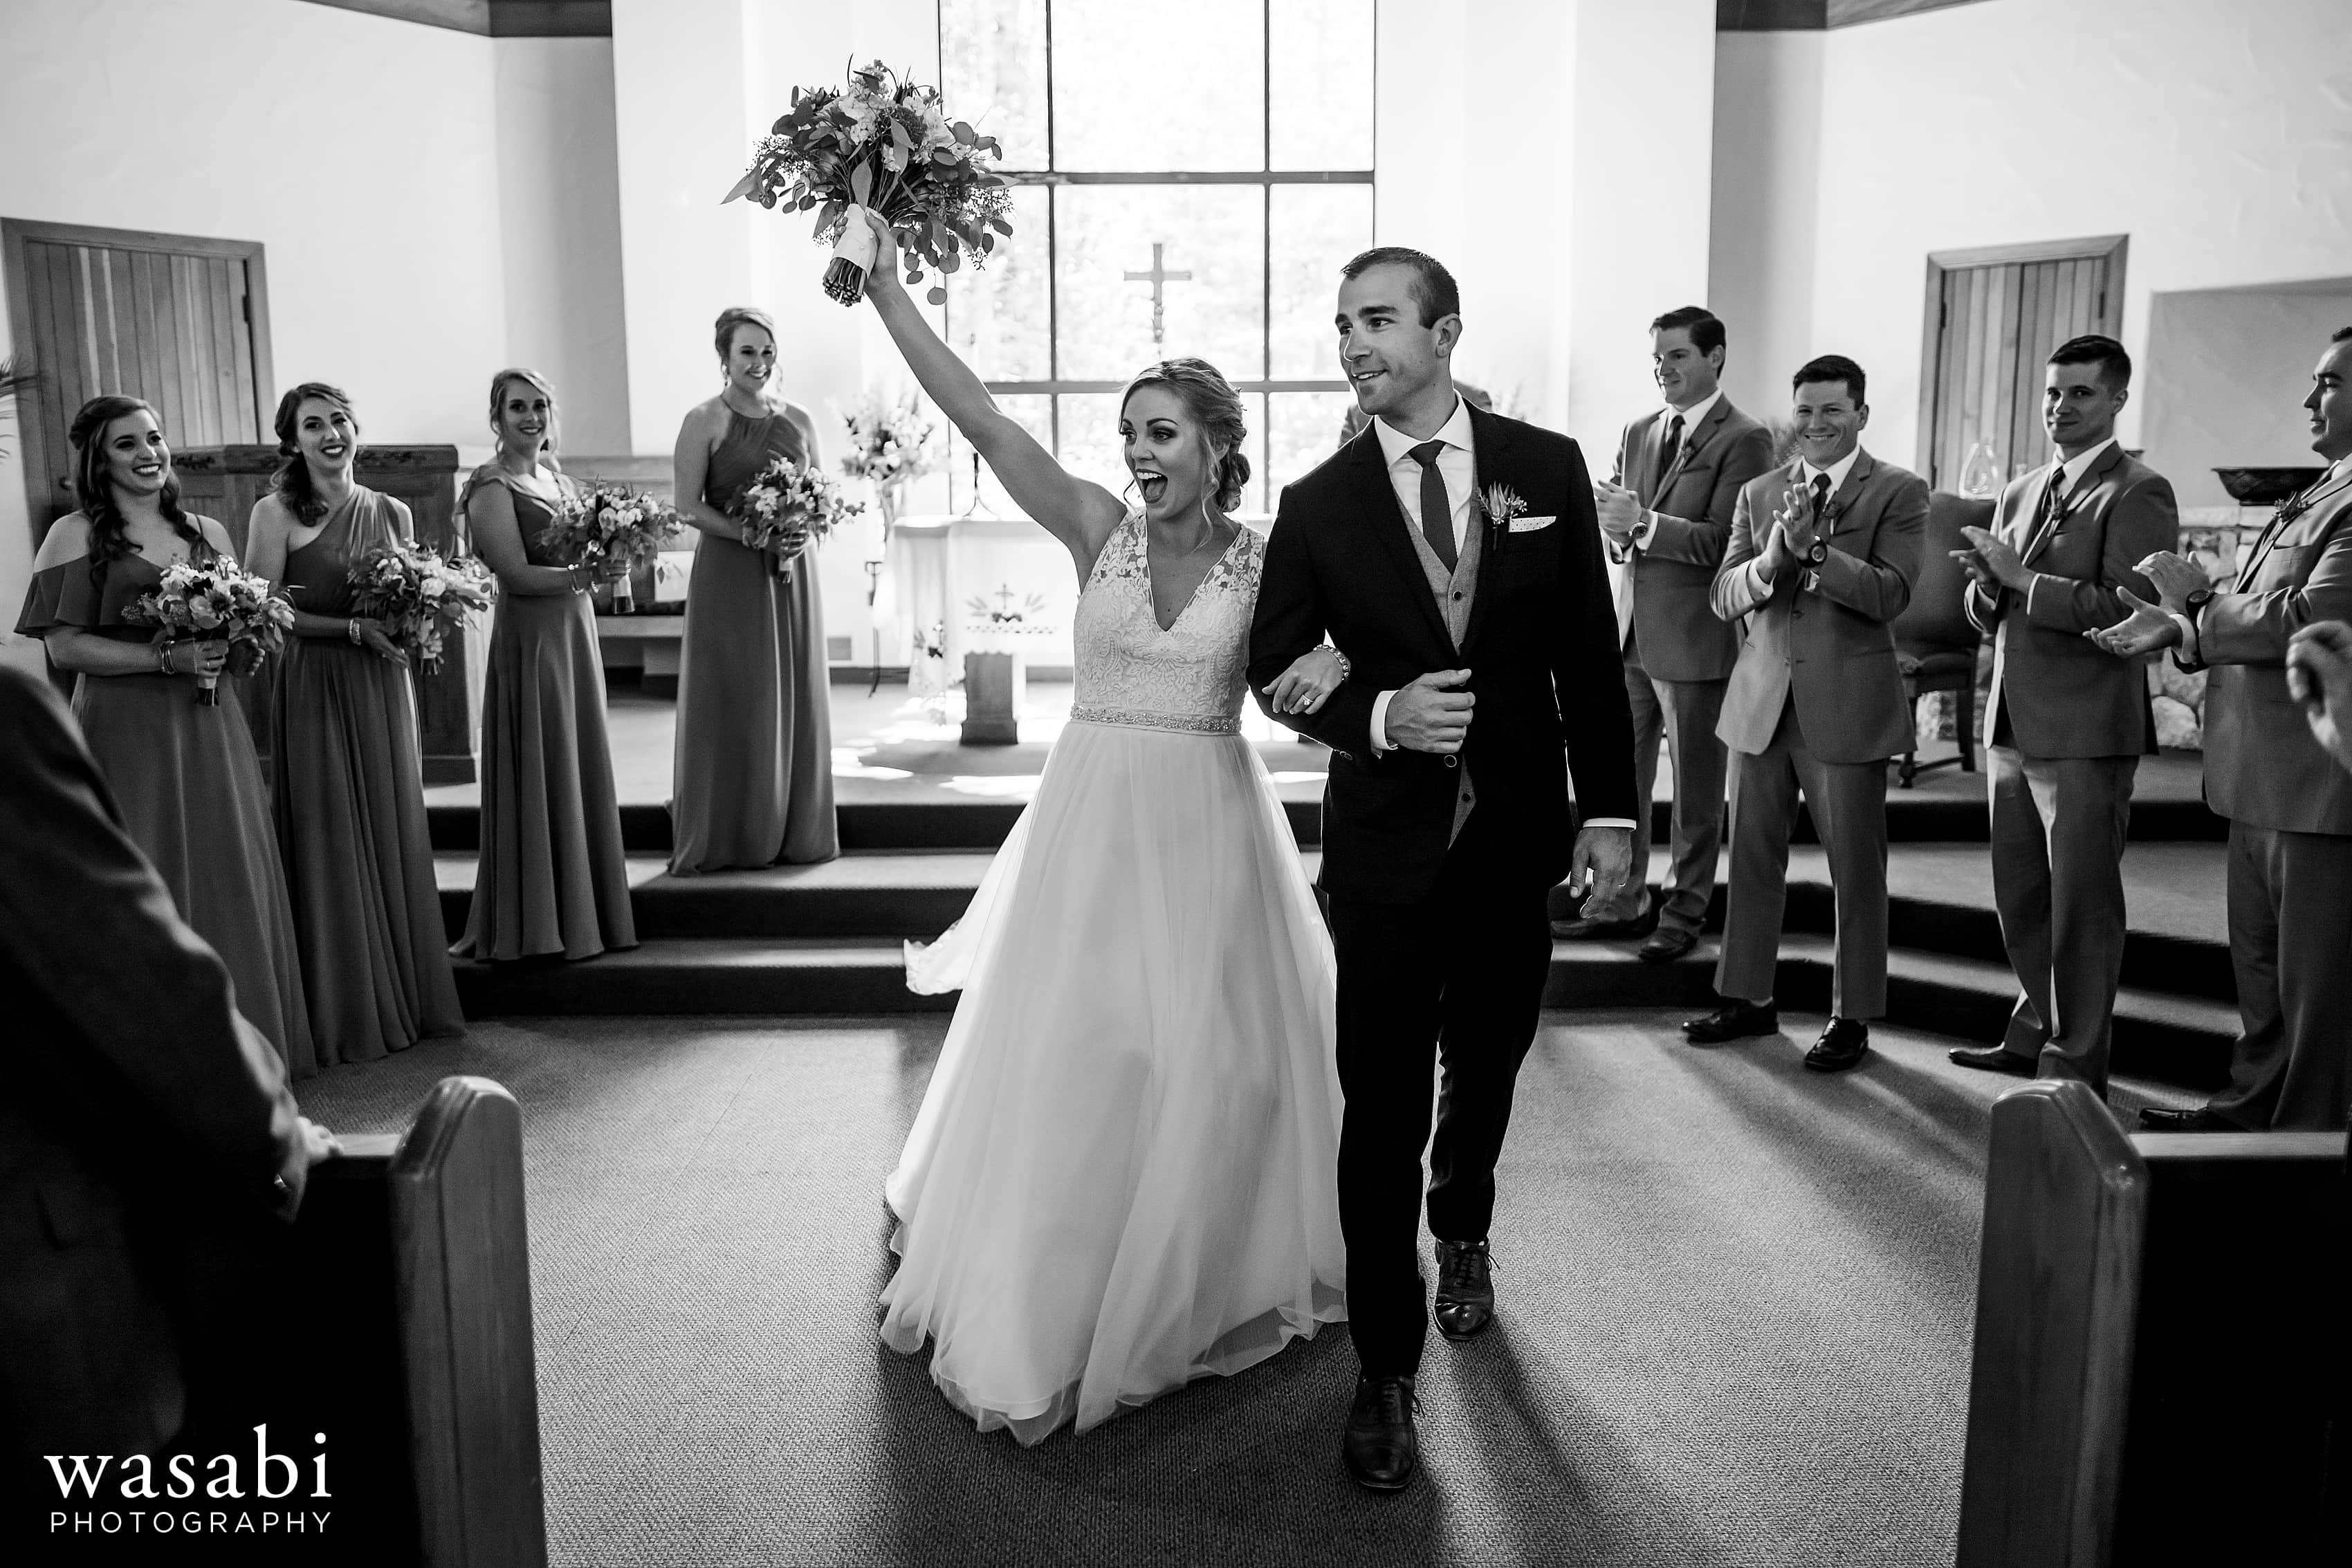 A look back at Wasabi Photography and Travis Haughton's best Chicago wedding photos of 2018, favorite moments and award winning photos.